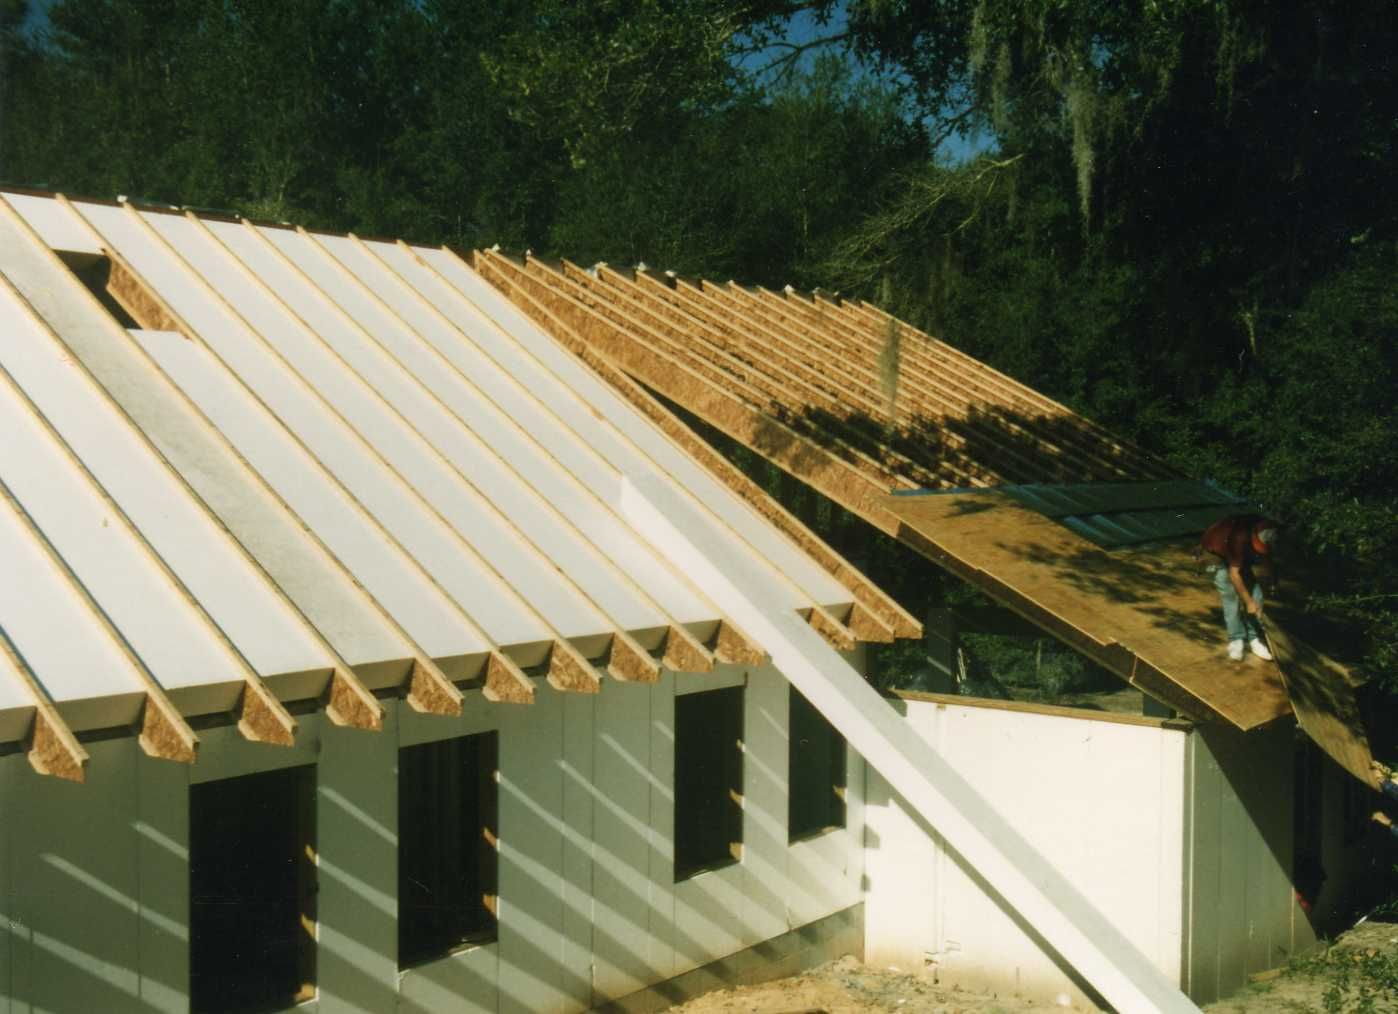 Thermobuilt Compare To Sips Modern Roofing Roof Architecture House Roof